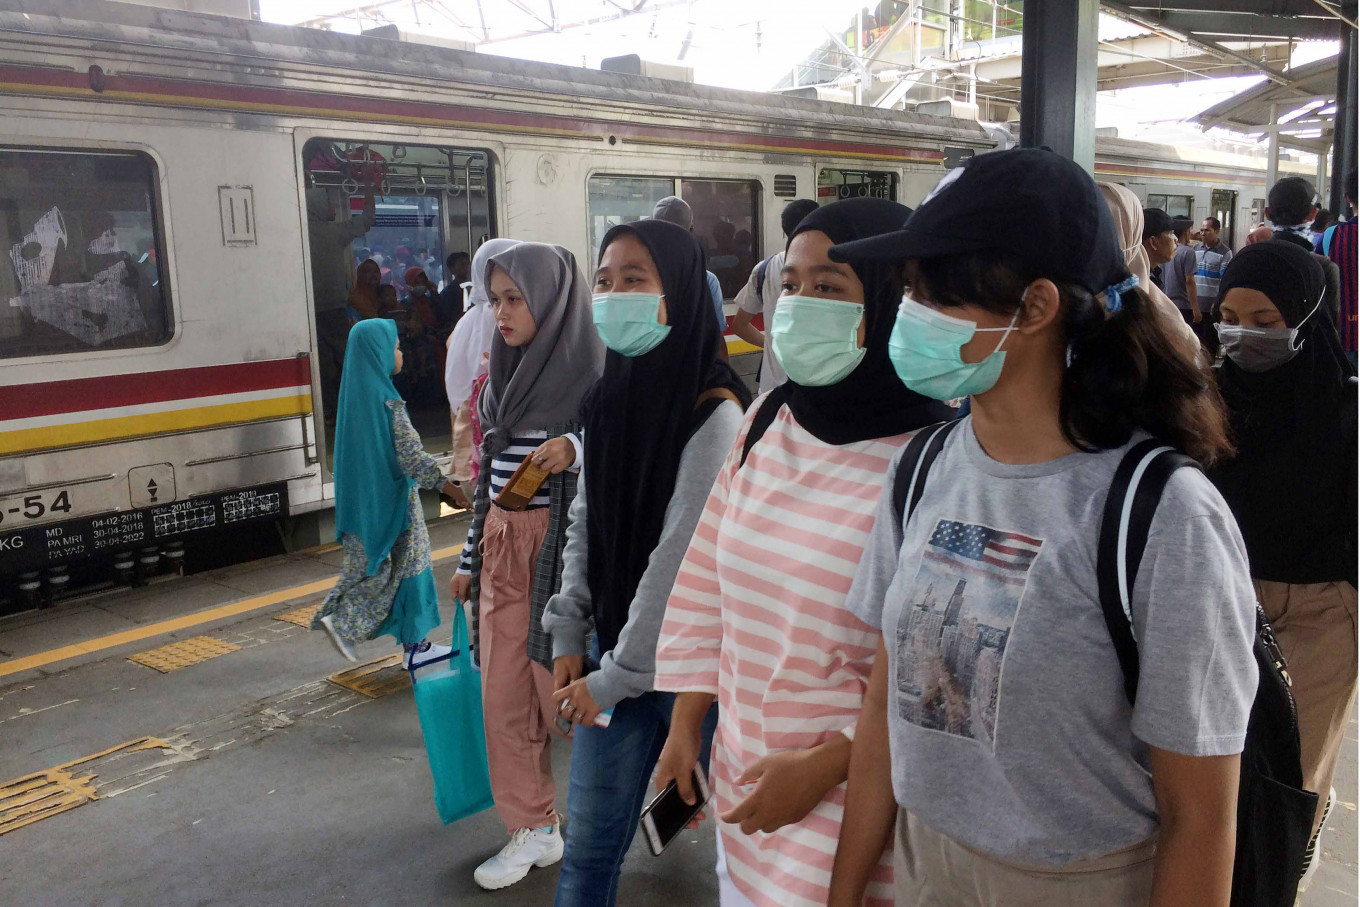 Women Comply With Covid 19 Health Protocol More Than Men Bps Survey Tue October 6 2020 The Jakarta Post